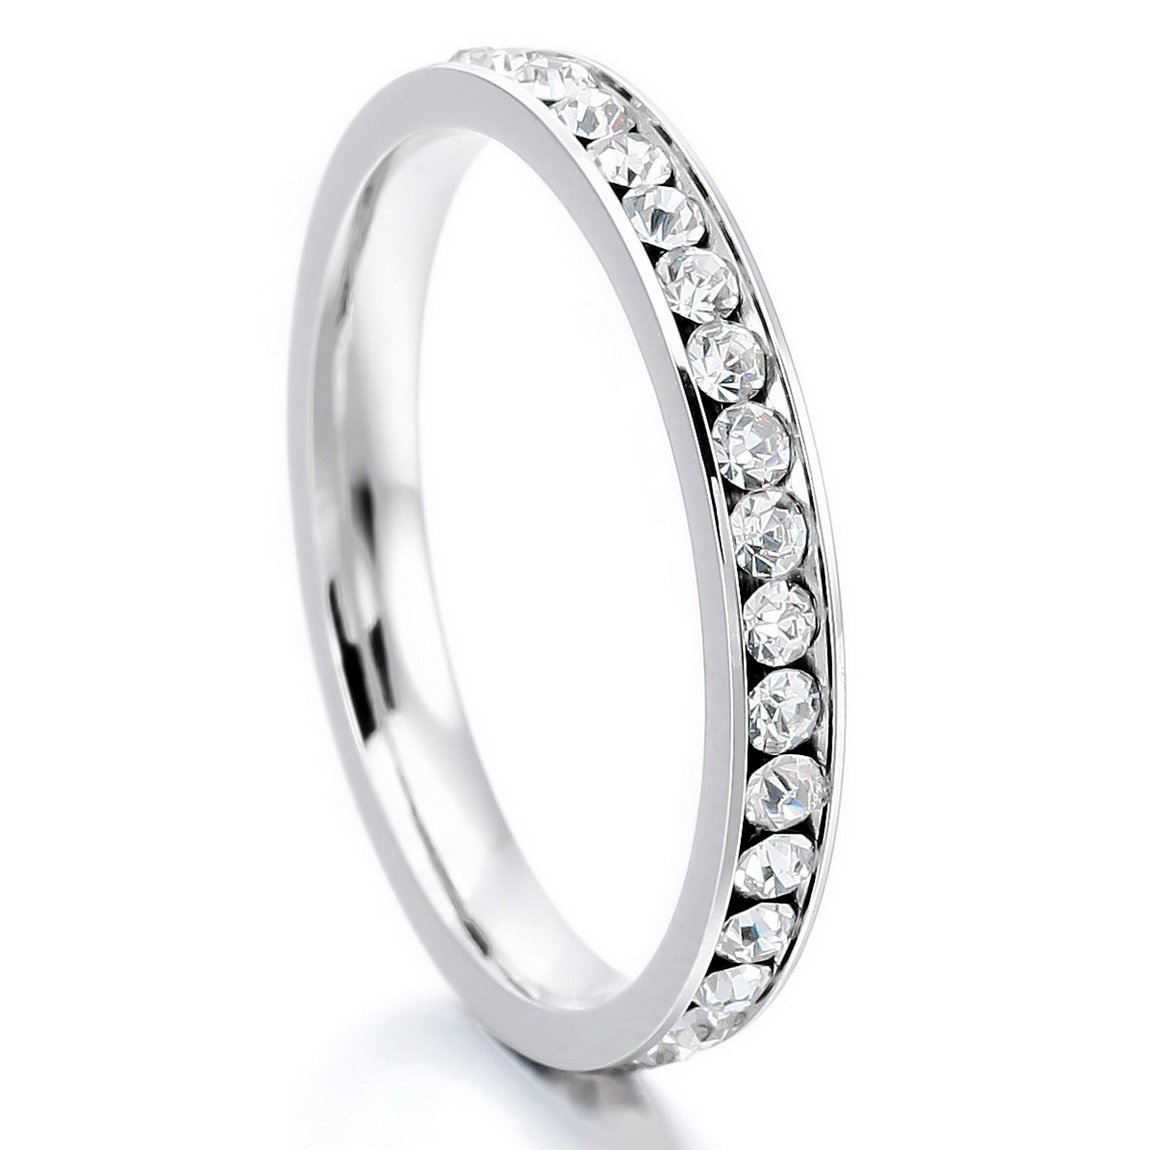 INBLUE Women's Stainless Steel Eternity Ring Band CZ White Wedding Size11